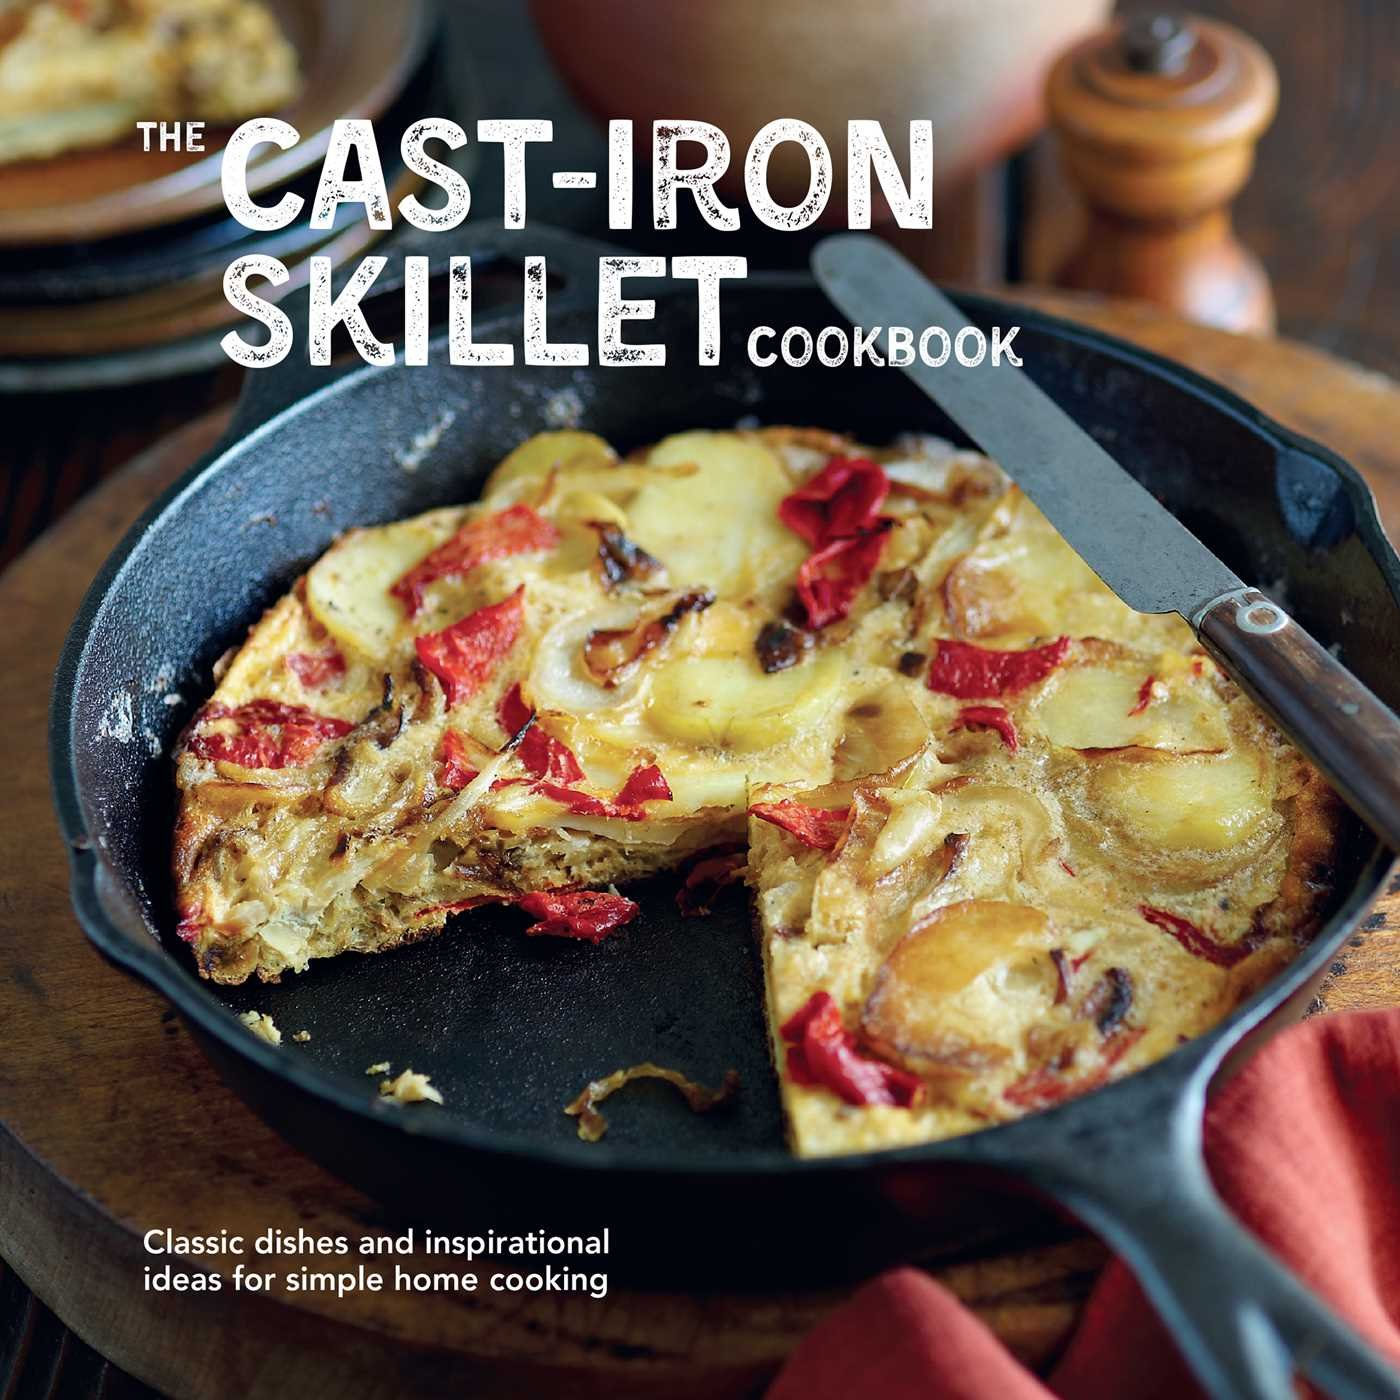 The Cast-iron Skillet Cookbook: Classic dishes and inspirational ideas for simple home cooking Hardcover – September 10, 2015 Ryland Peters & Small 1849756627 Methods - Special Appliances Cookbooks